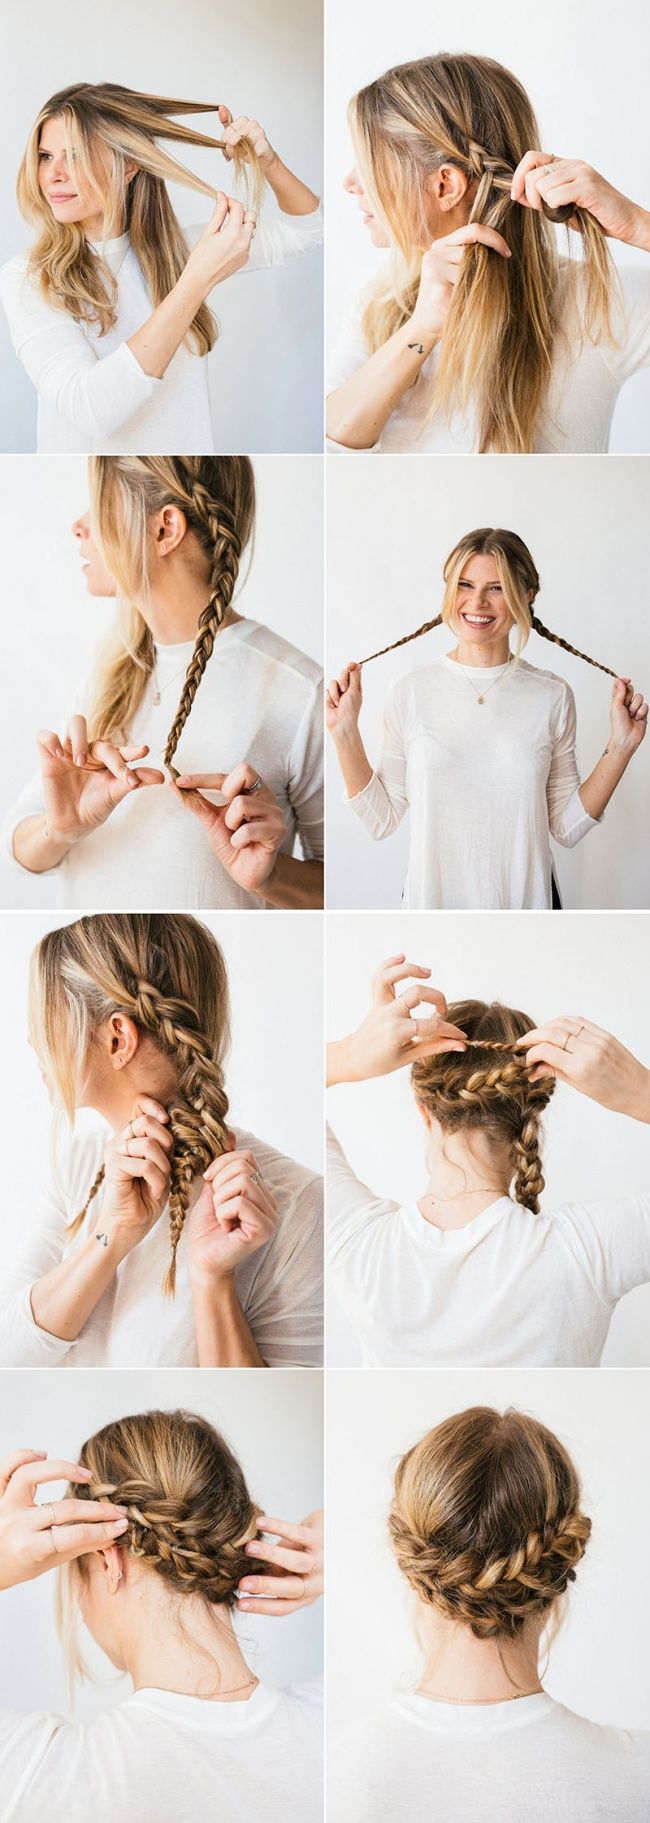 Braided-Low-Hairdo-for-Stunning-Summer-Look Cool and Cute Summer Hairstyles for Women